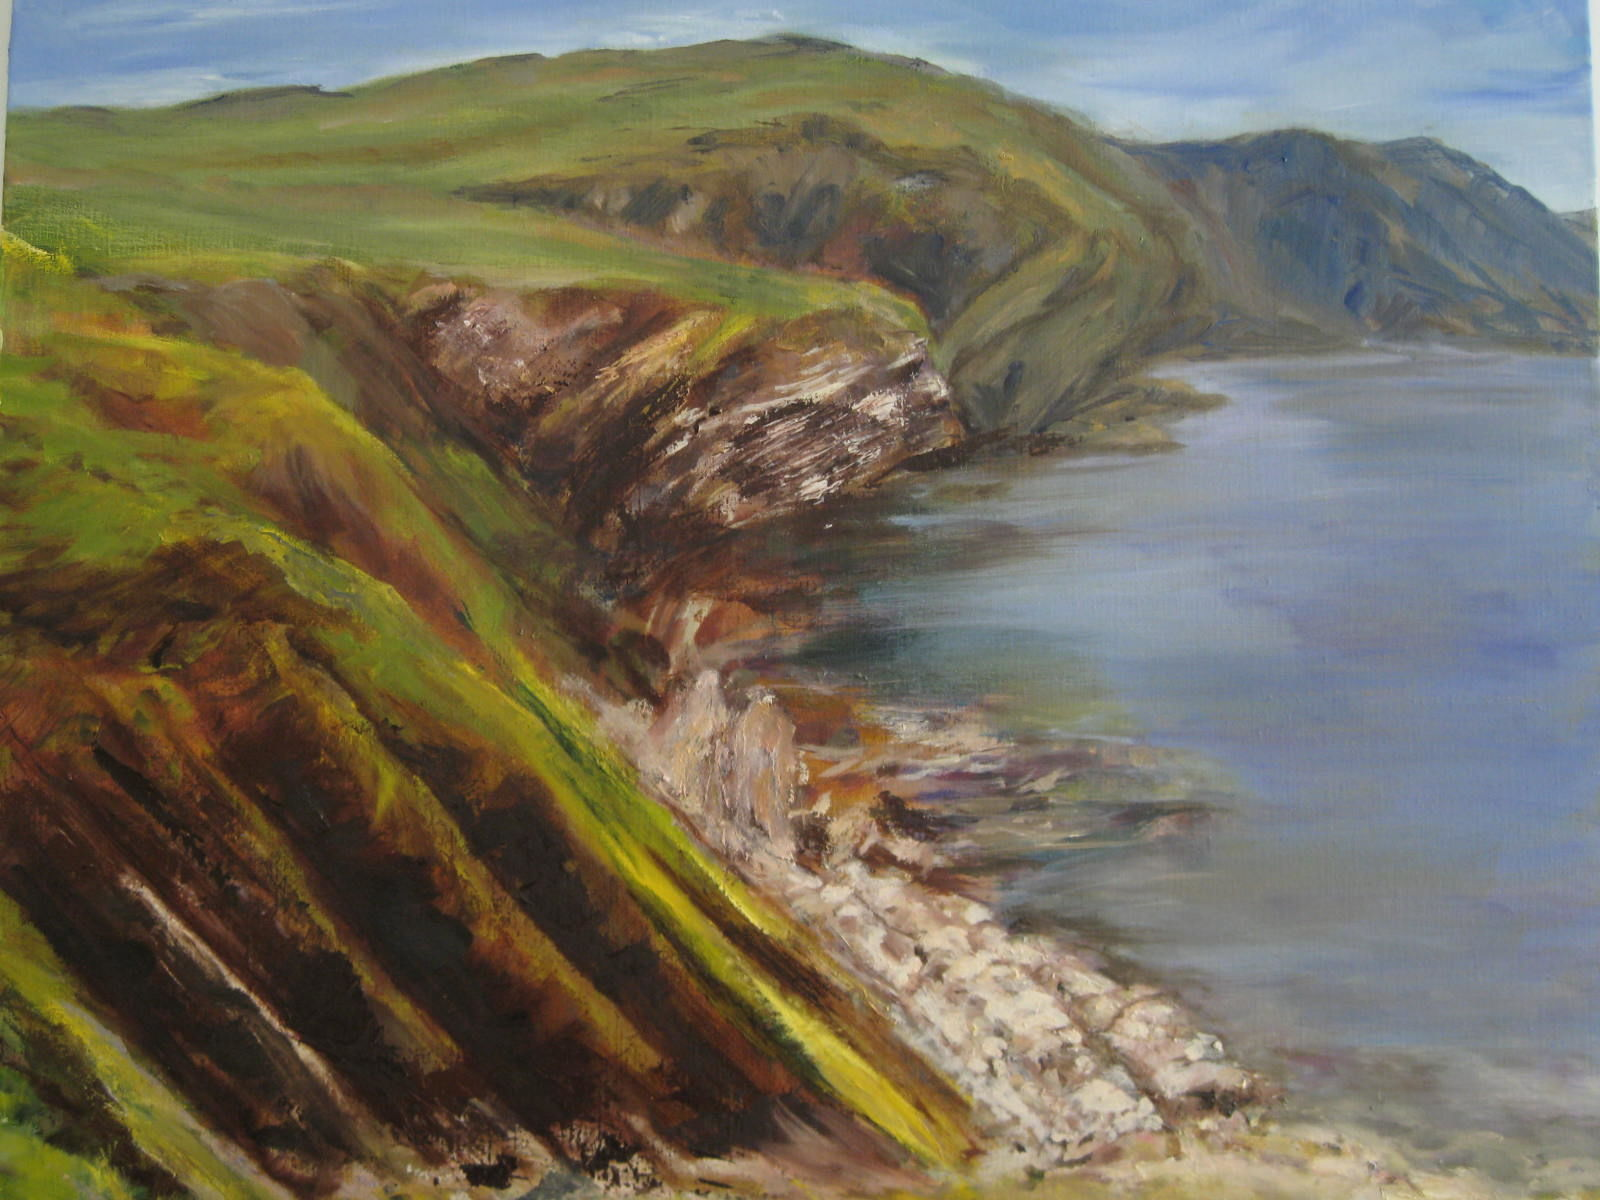 St Abbs Head light (67cm x 80cm)